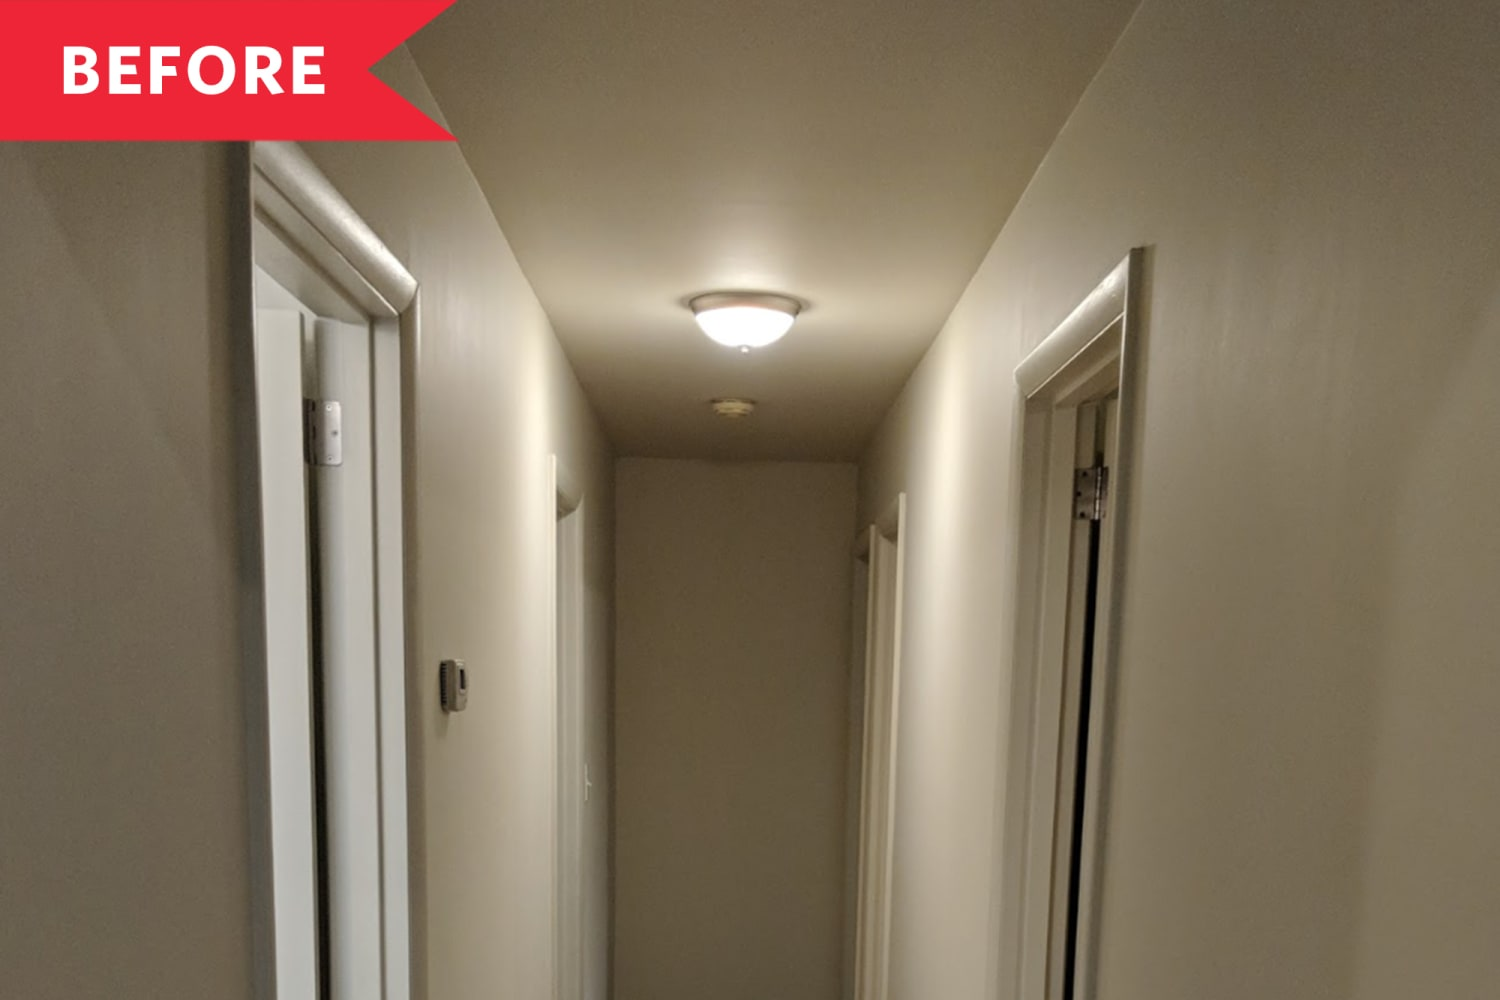 Before and After: A Bare Hallway Gets a Stunning Gallery Wall Glow Up